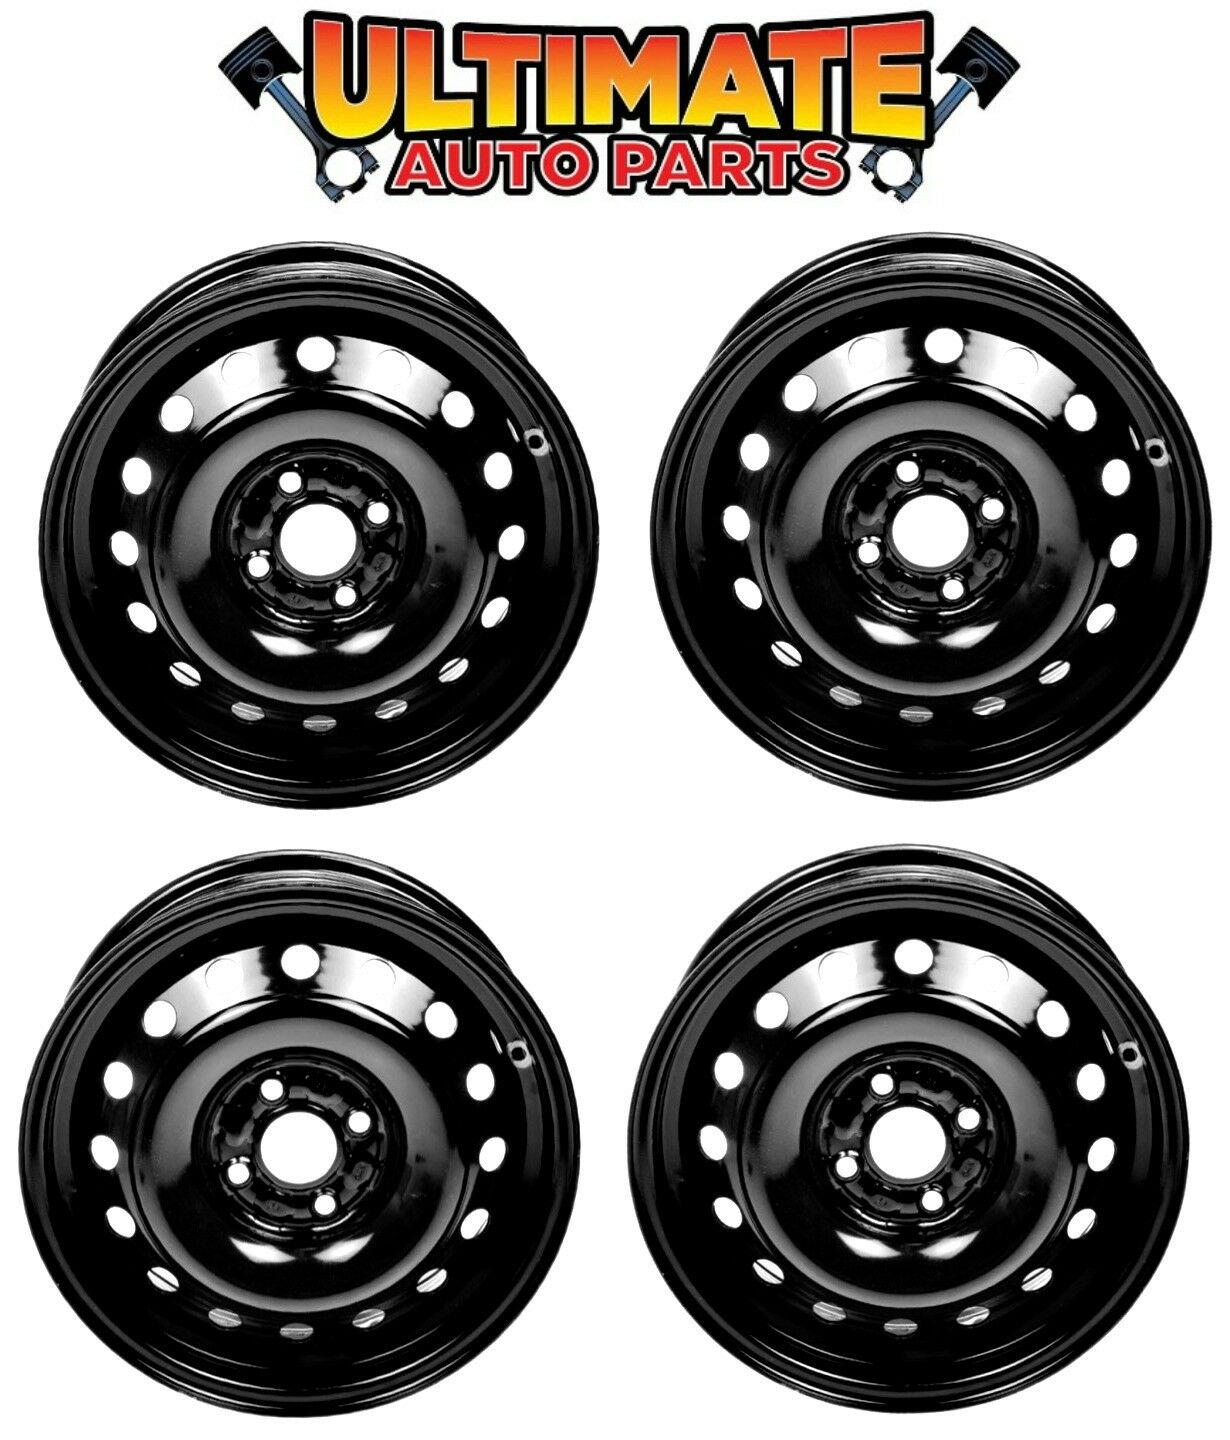 IWS Auto Replacement For New 14 Inch 4 Lug Steel Wheel Rim 05-11 Chevrolet Aveo 09-10 Pontiac G3 05-10 Wave Black